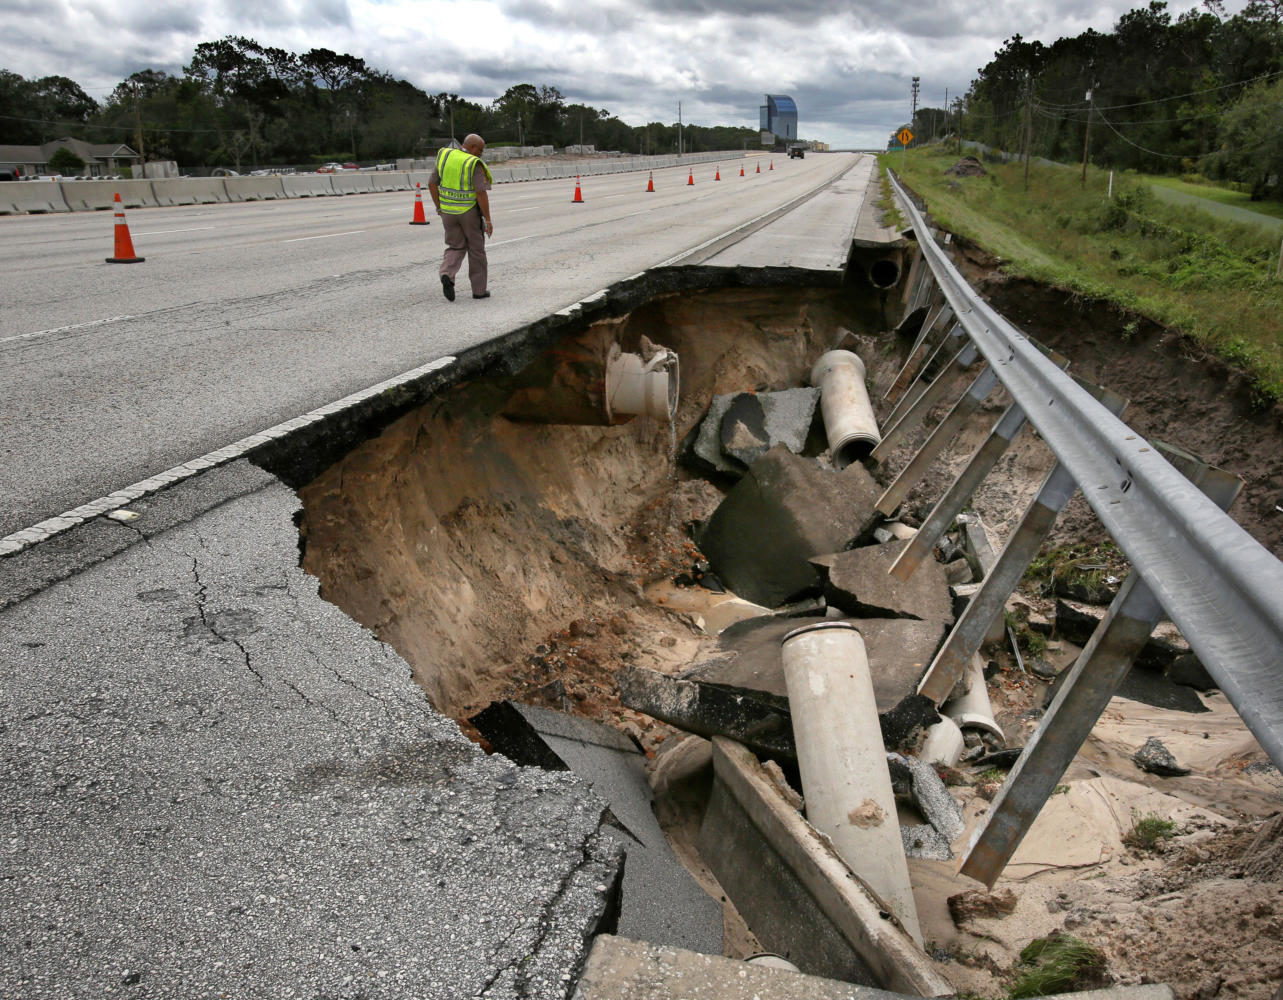 A Florida Highway Patrol trooper inspects a closed segment of Interstate 4, near State Road 434, in Longwood, Fla. on Monday, Sept. 11, 2017, after a portion of the interstate highway northeast of Orlando washed away during Hurricane Irma's passing through central Florida on Sunday night.  (Joe Burbank/Orlando Sentinel/TNS)